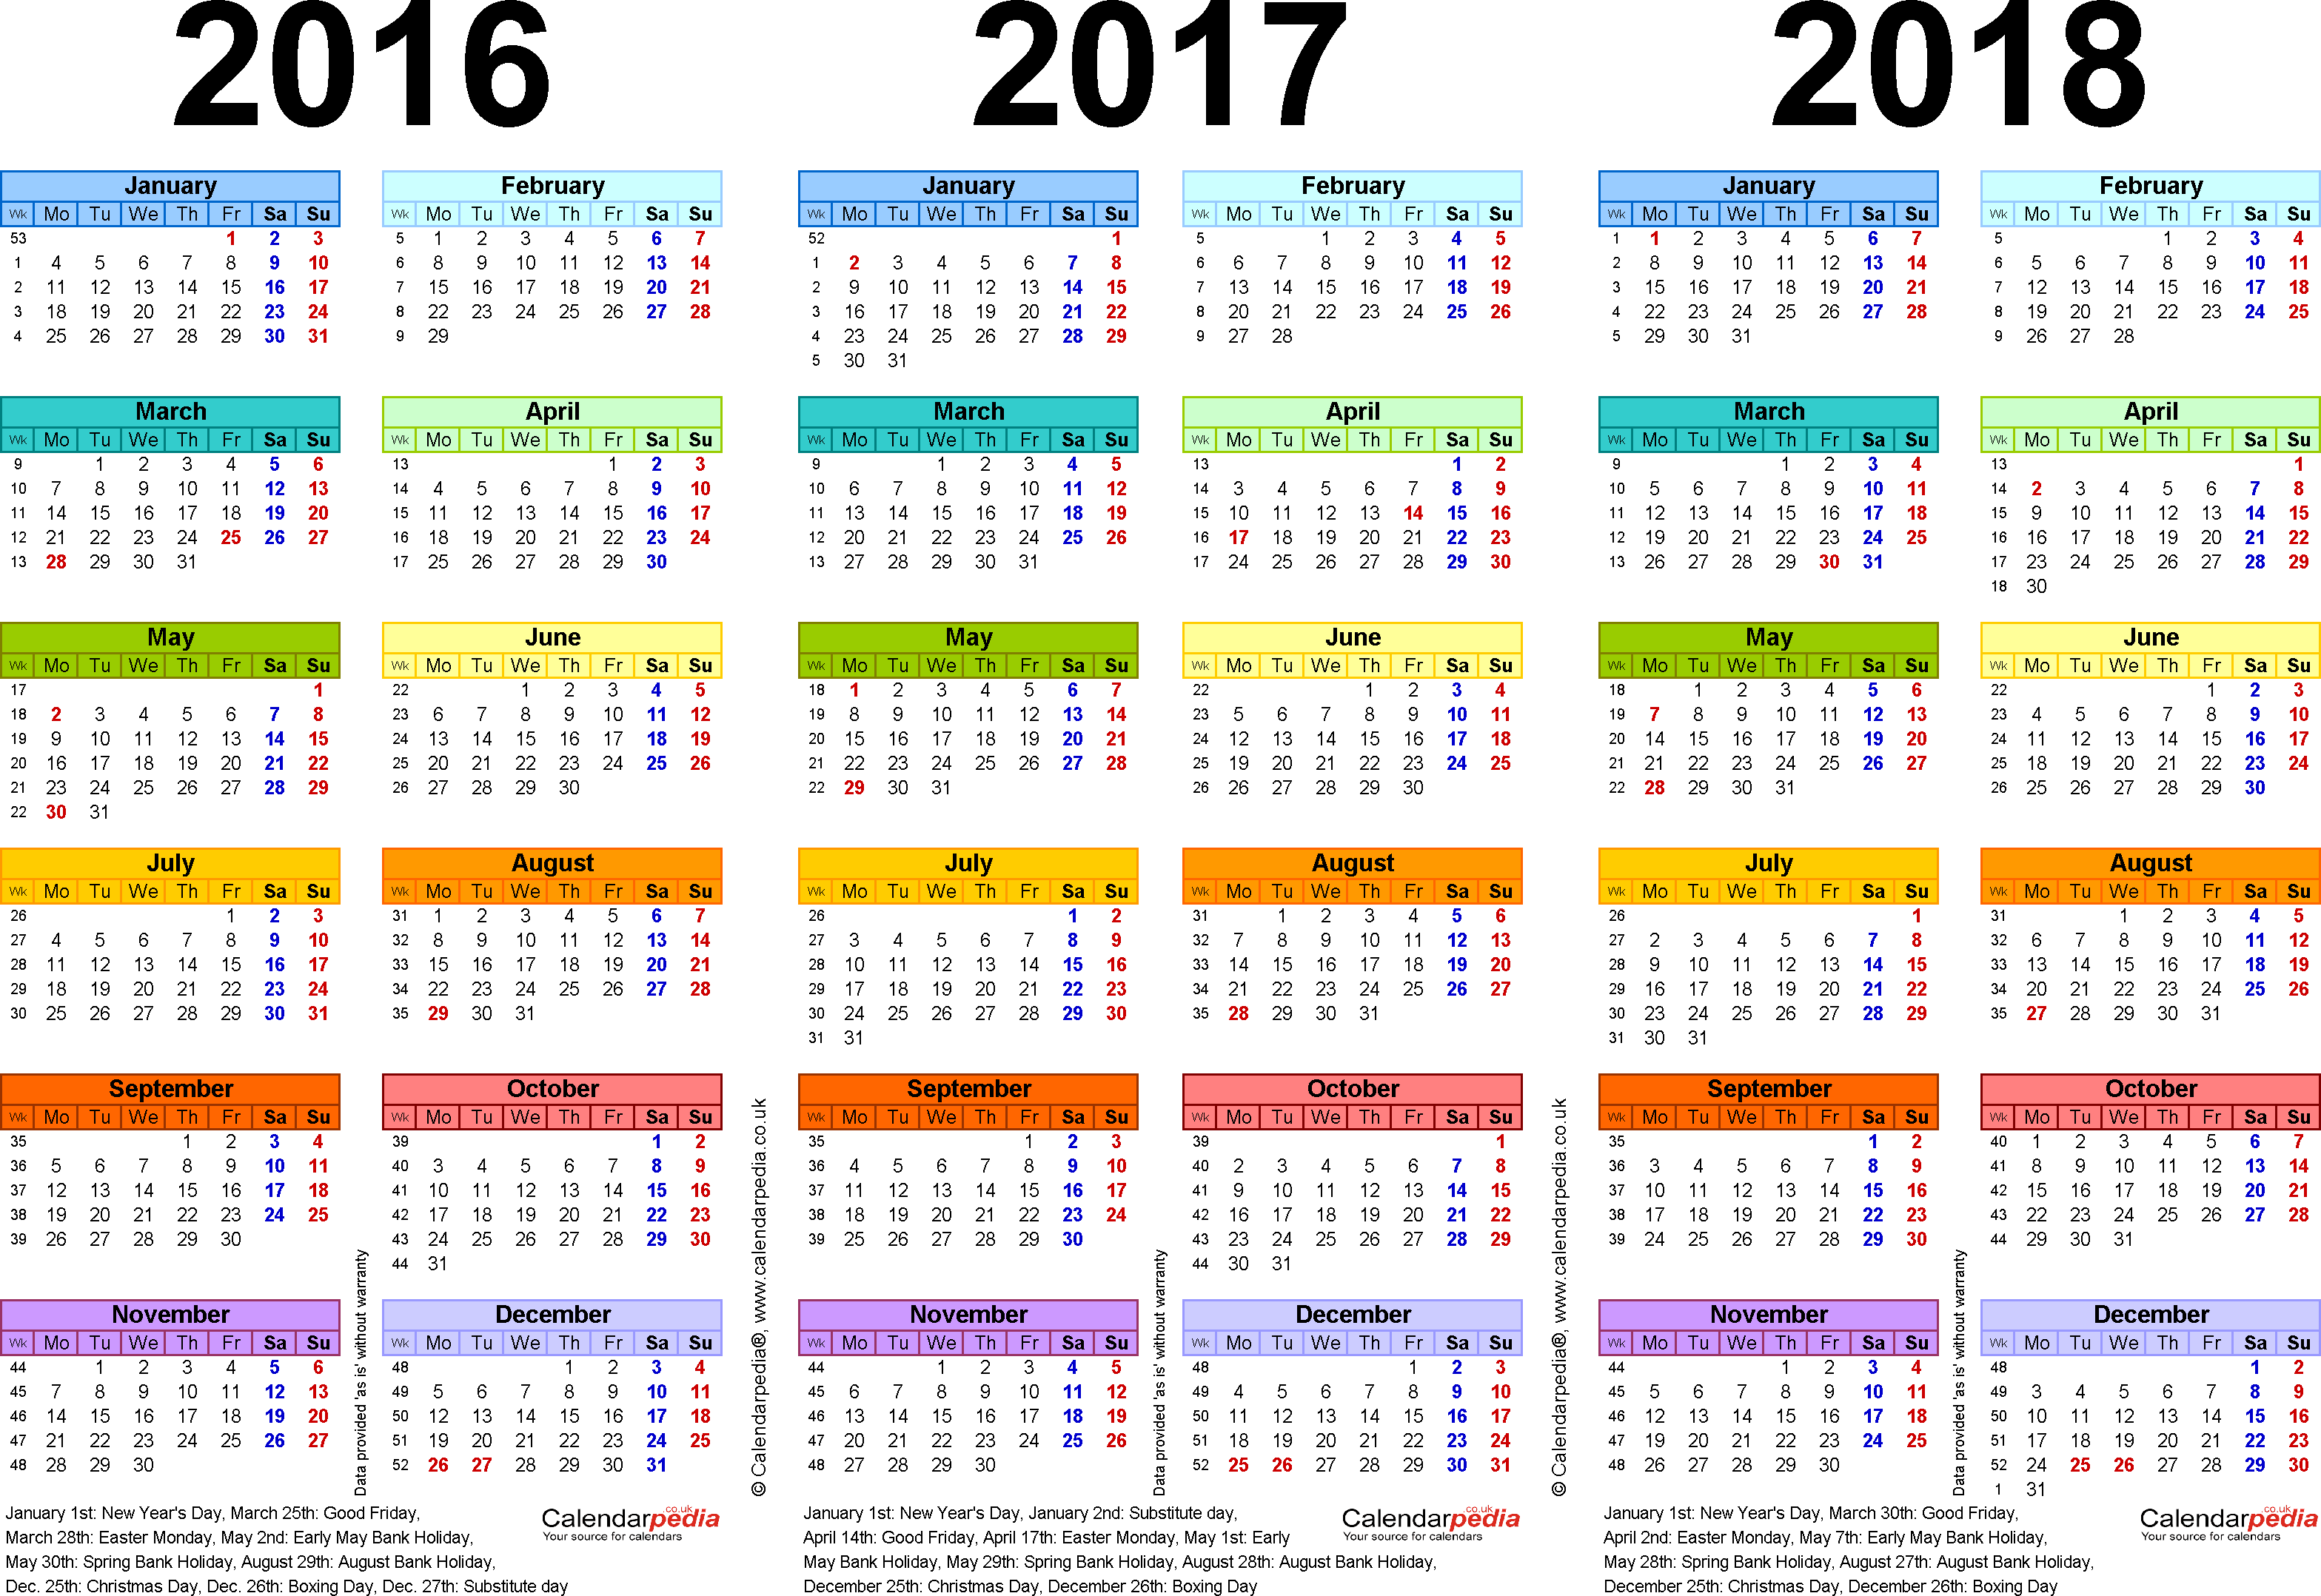 Template 1: PDF template for three year calendar 2016-2018 in colour (landscape orientation, 1 page, A4)